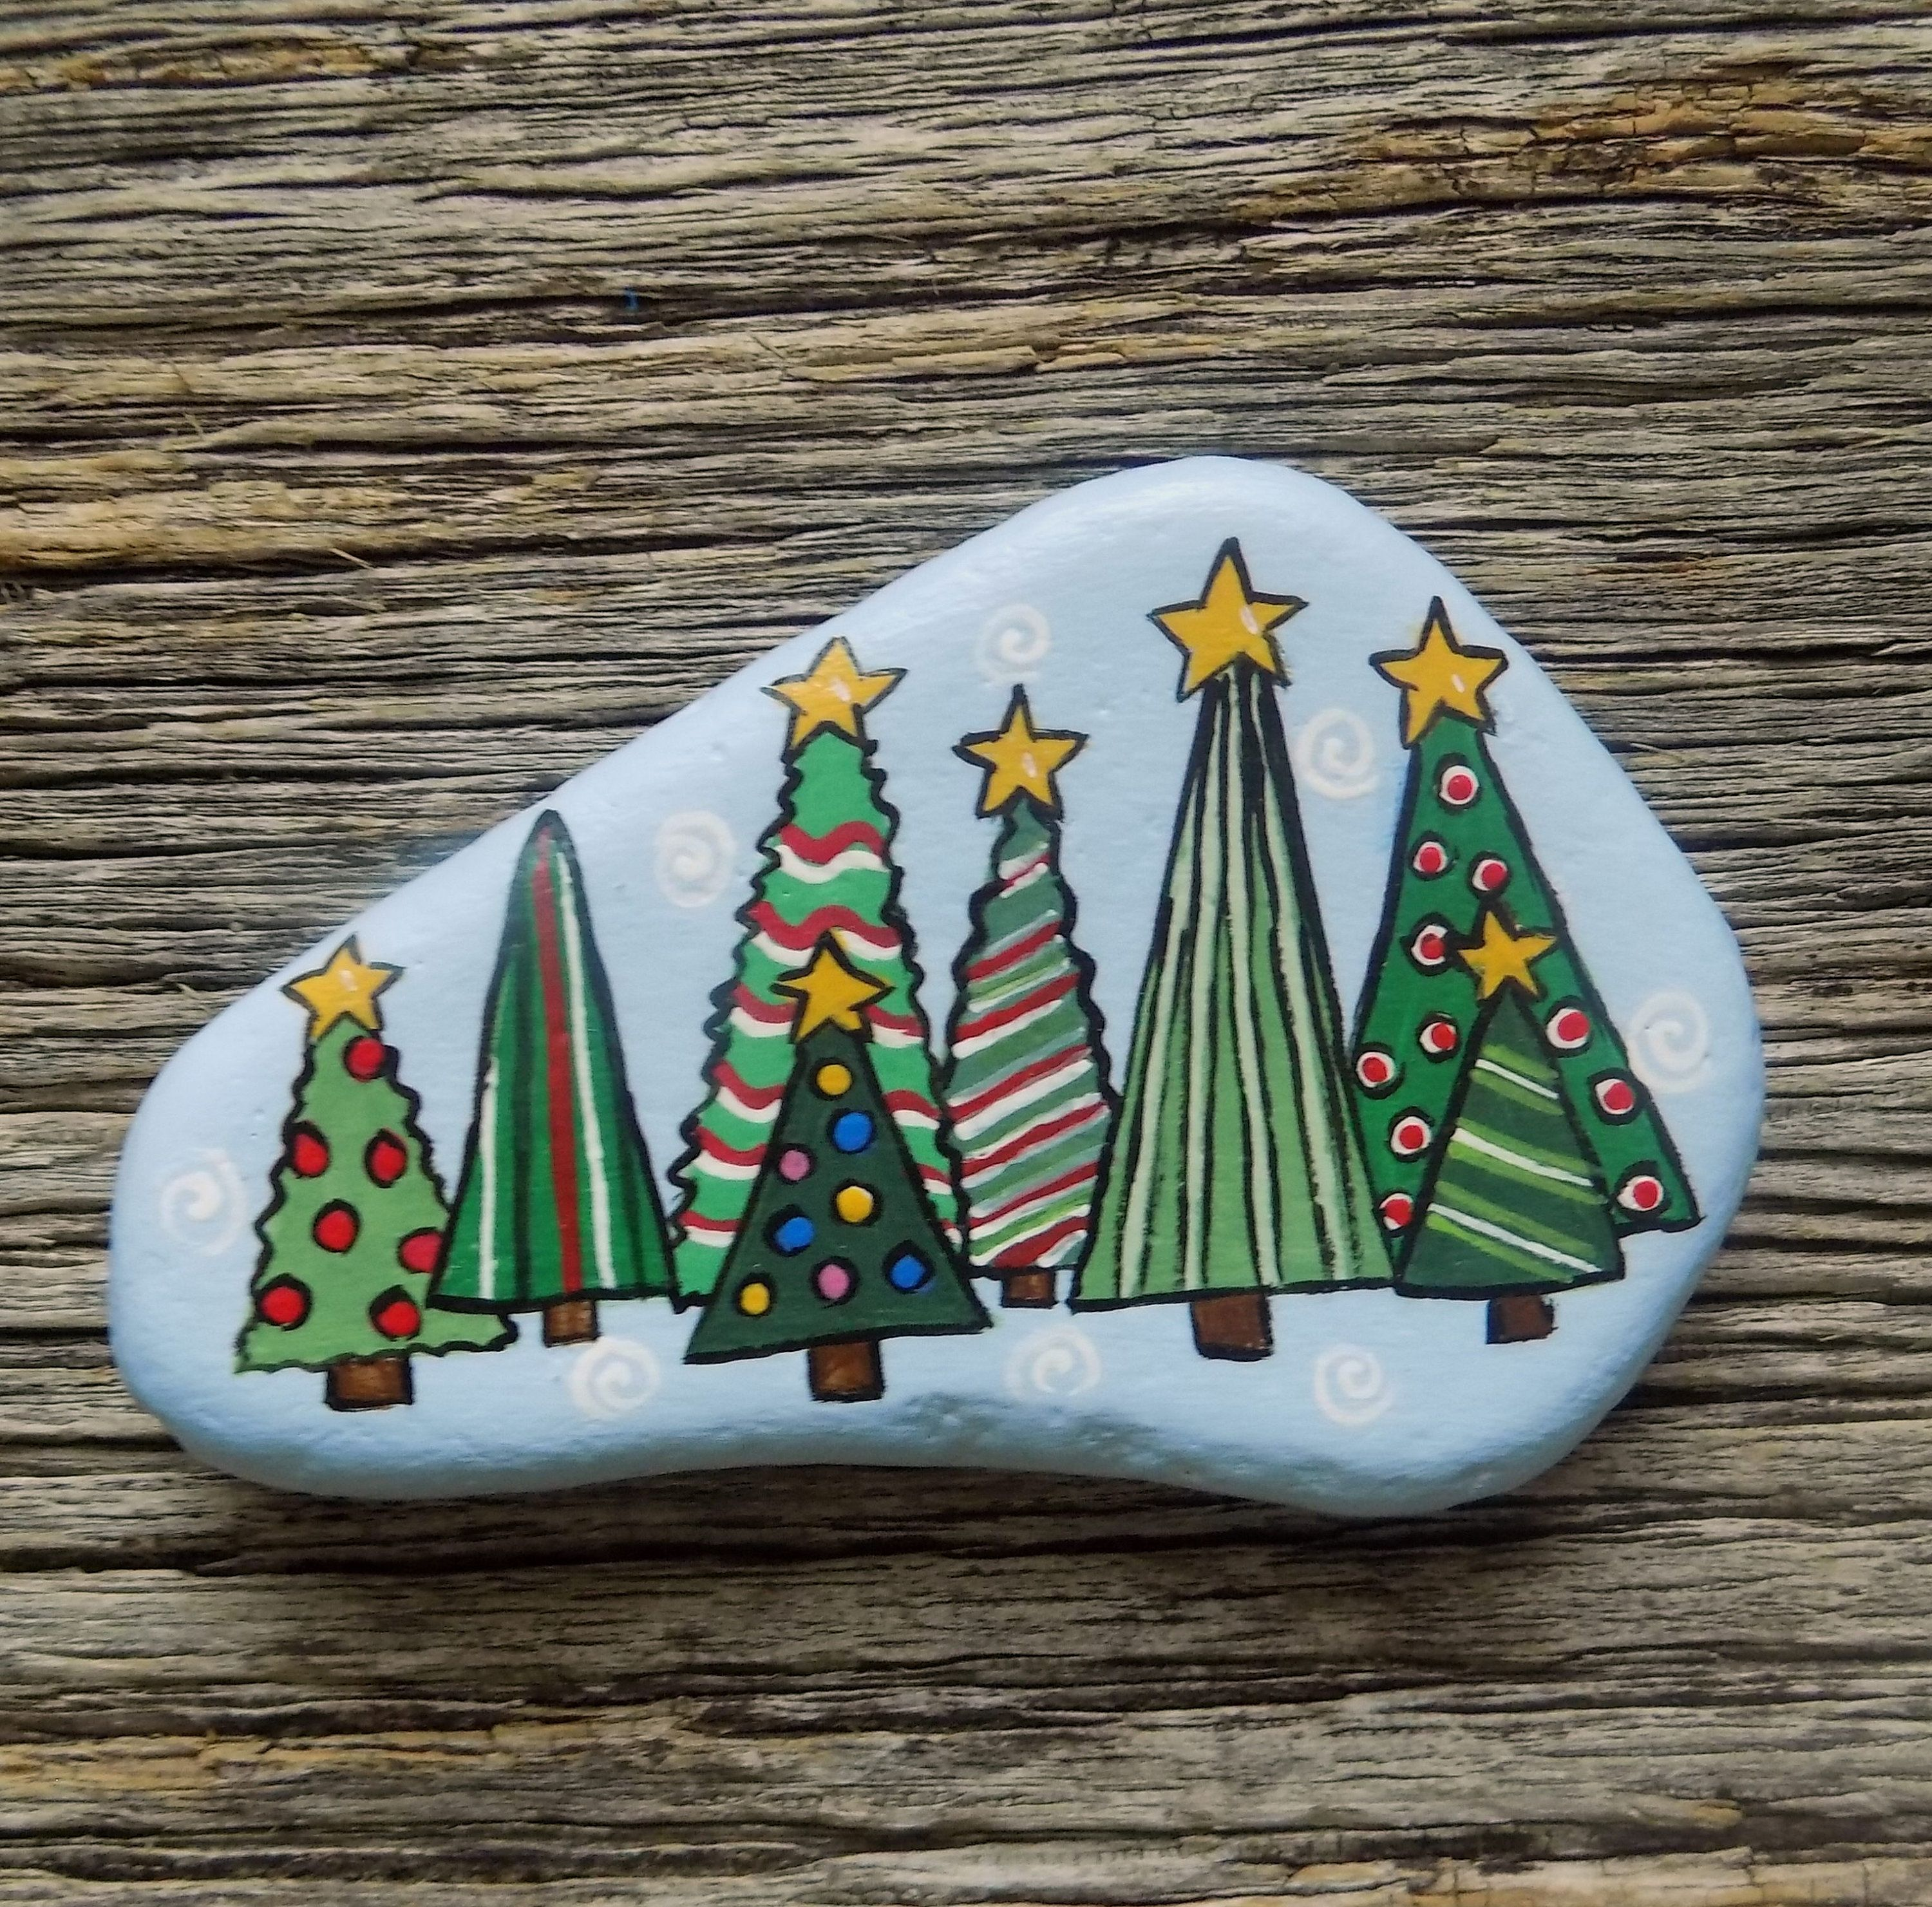 Decorated Trees Painted Rock Decorative Accent Stone Paperweight